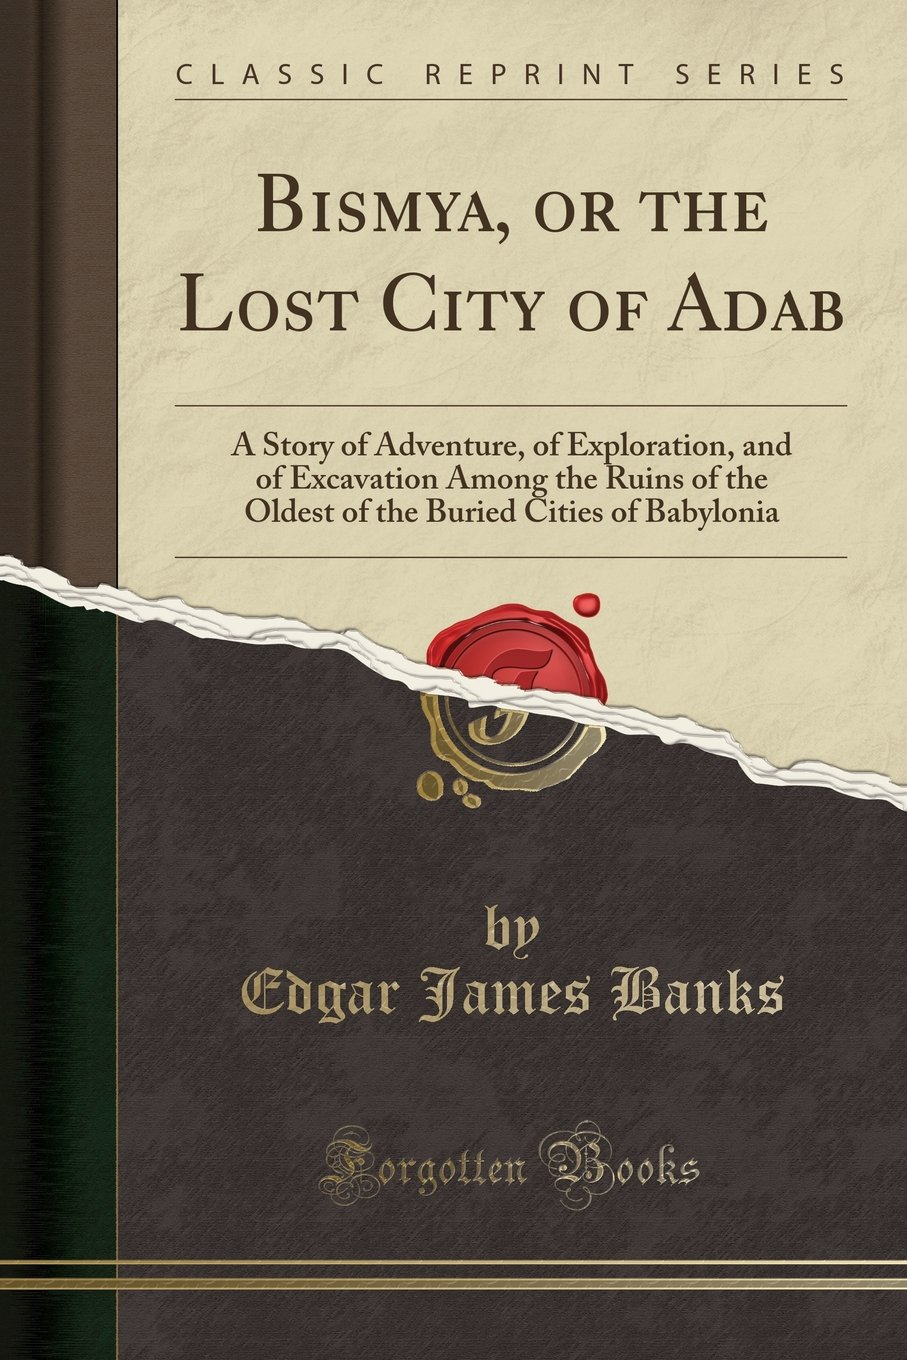 Bismya, or the Lost City of Adab: A Story of Adventure, of Exploration, and of Excavation Among the Ruins of the Oldest of the Buried Cities of Babylonia (Classic Reprint)